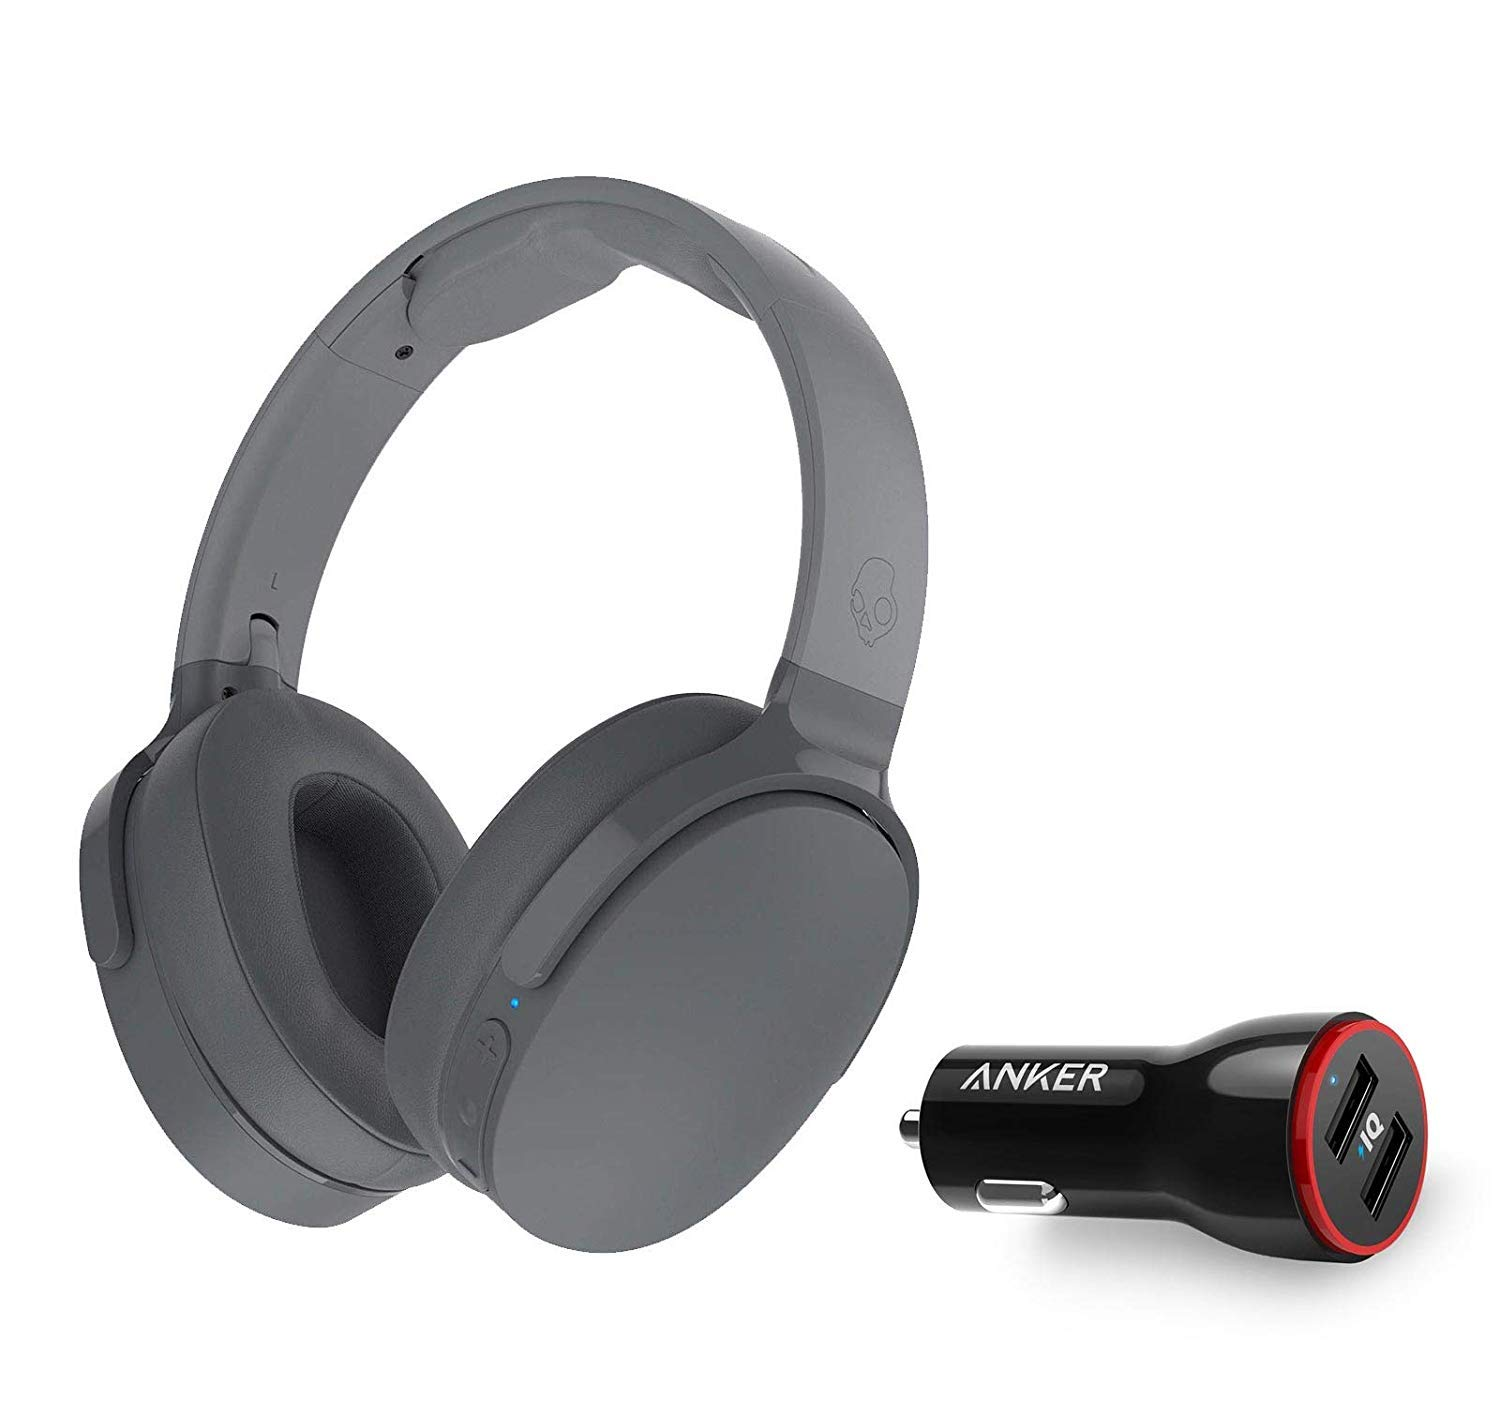 Skullcandy HESH 3 Noise Canceling Over-Ear Wireless Bluetooth Headphone Bundle with Anker 2-Port USB Car Charger - Gray